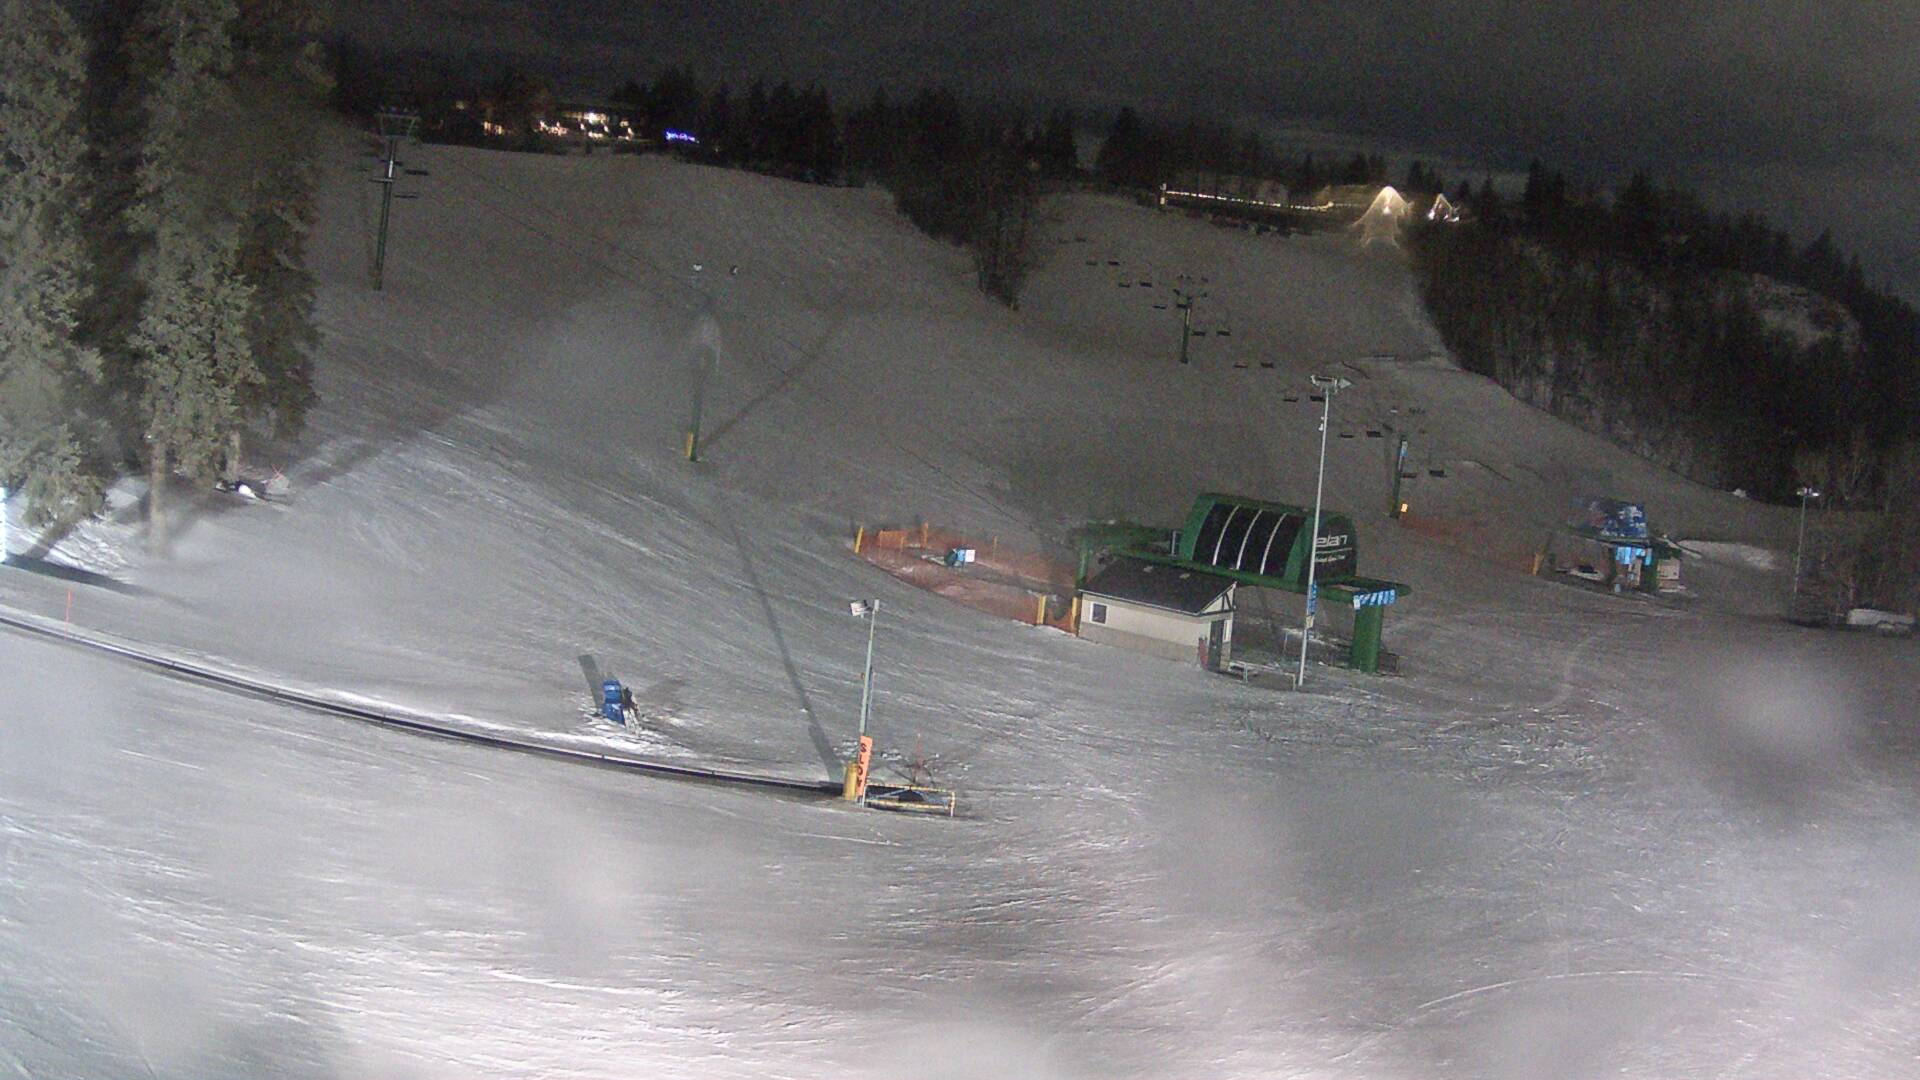 Snow Valley Webcam 1